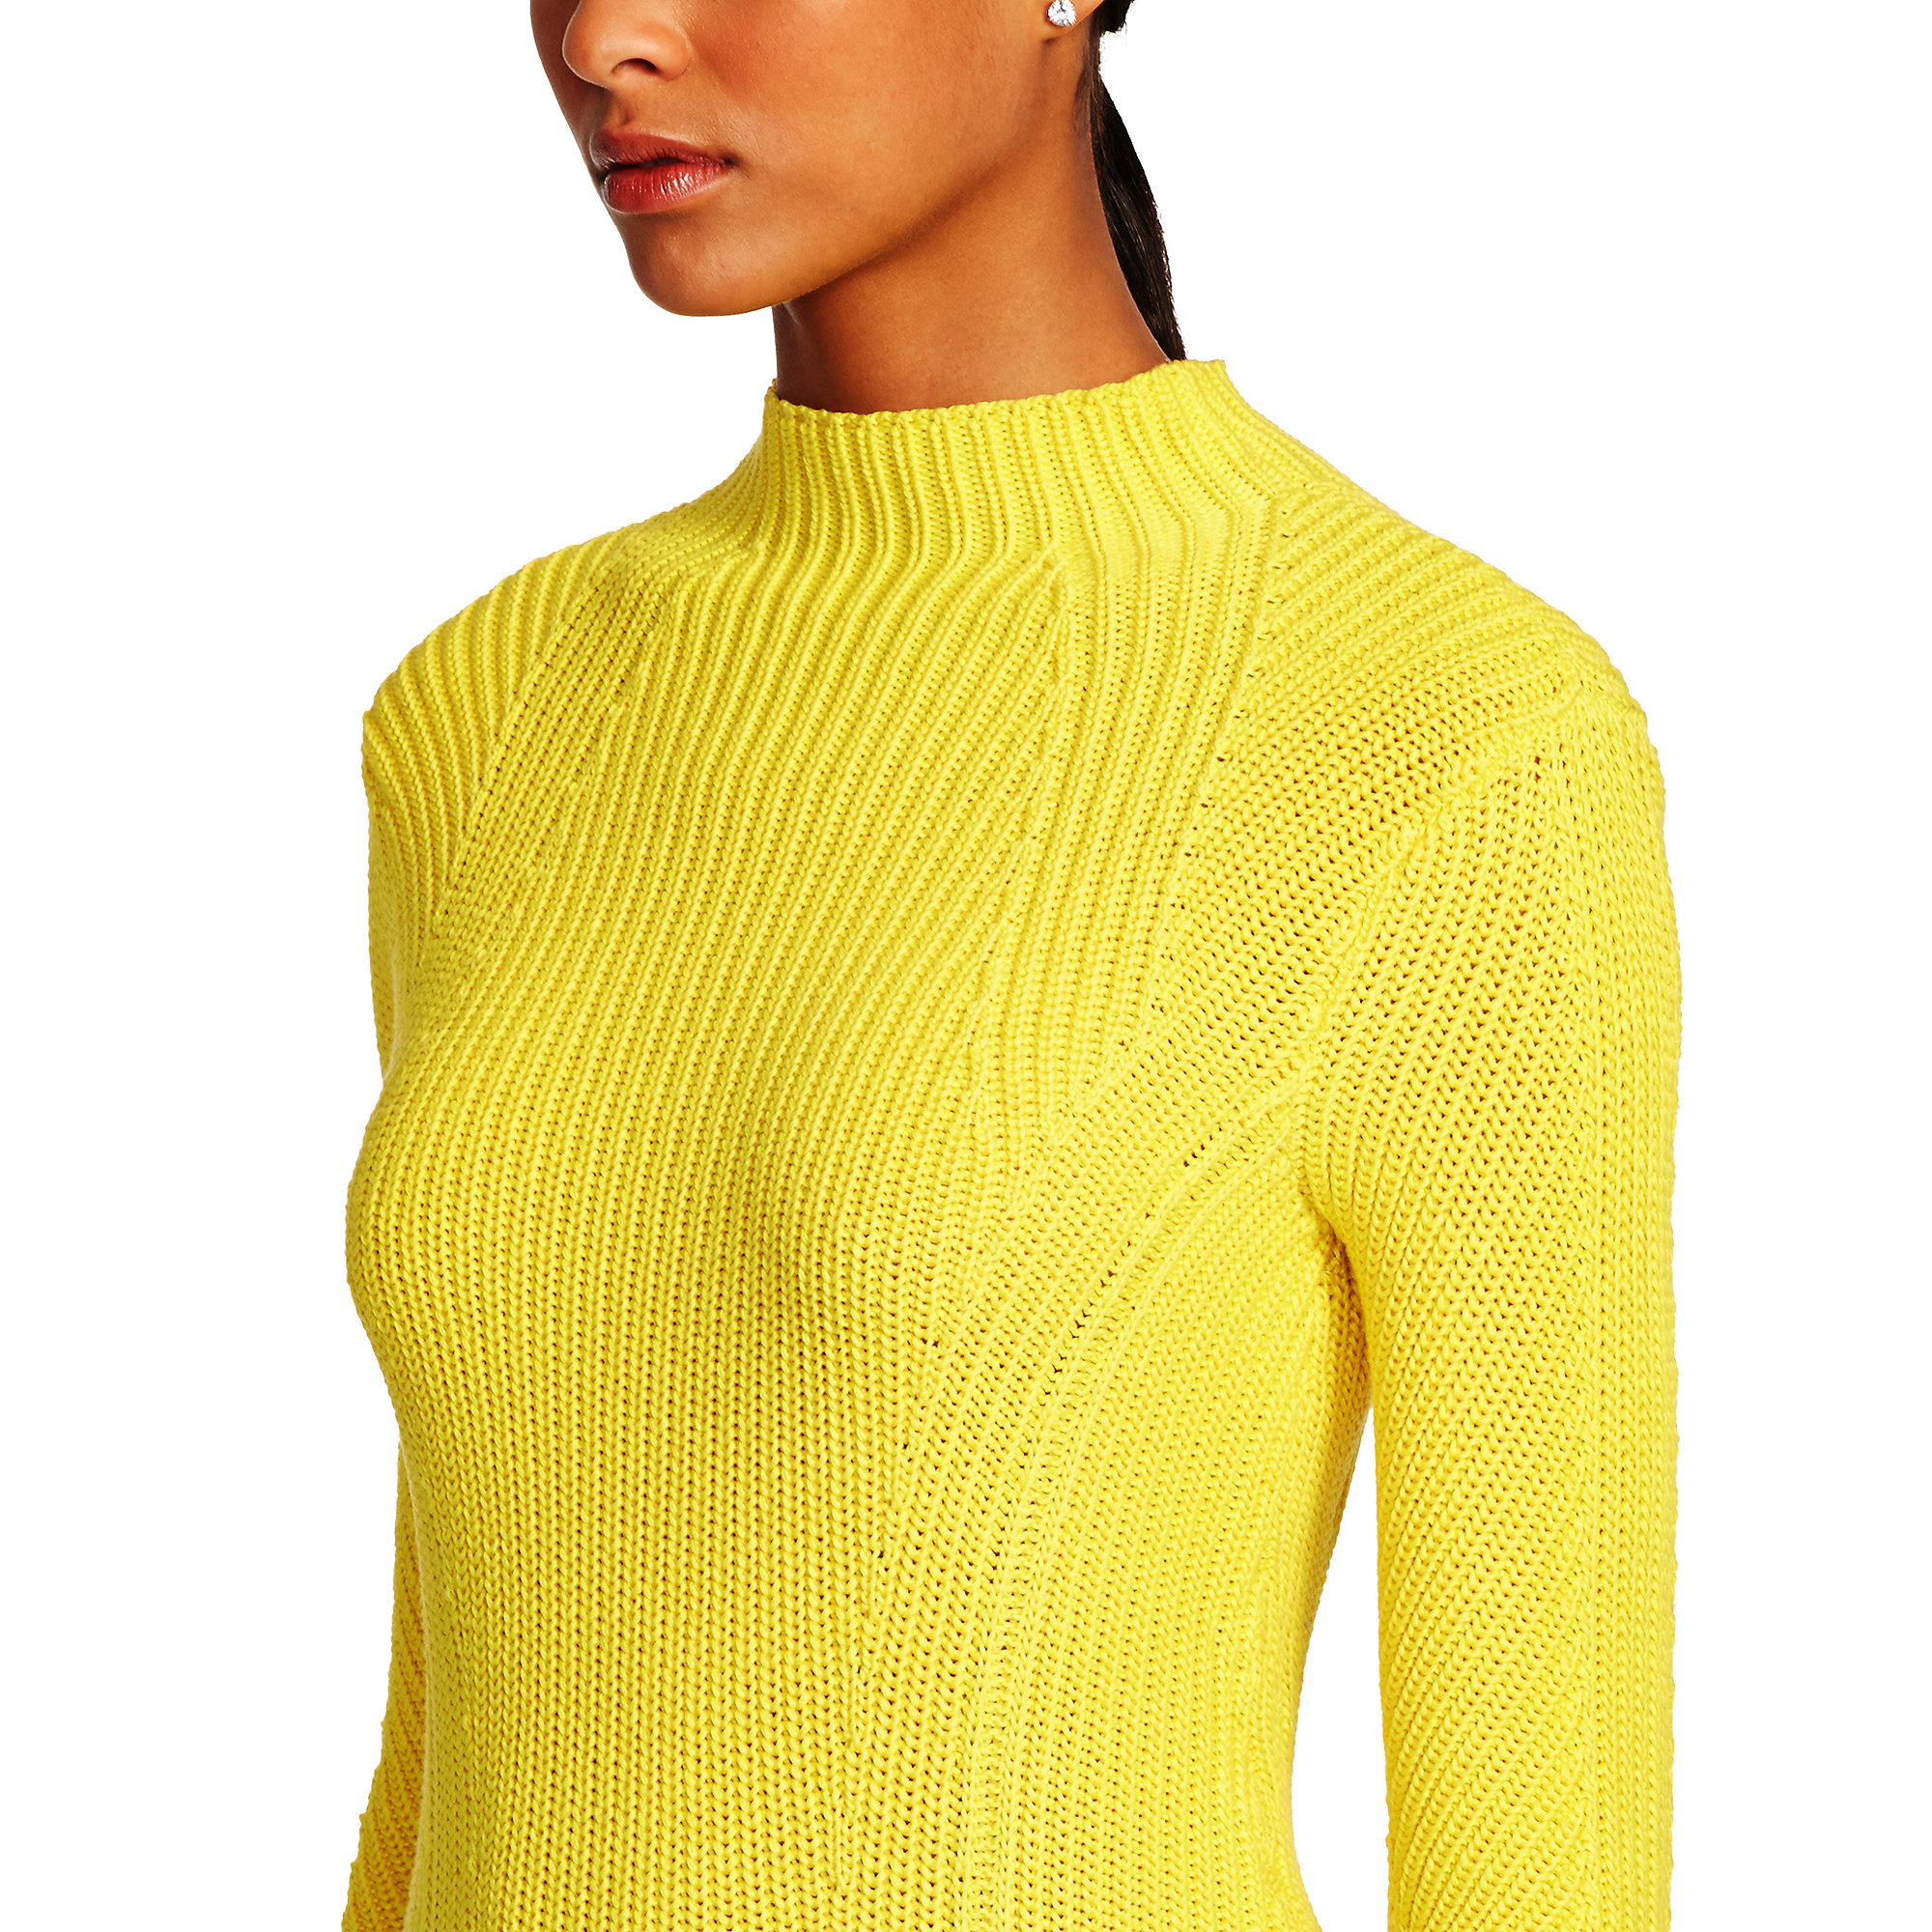 Ralph lauren black label Cotton-silk Mockneck Sweater in Yellow | Lyst